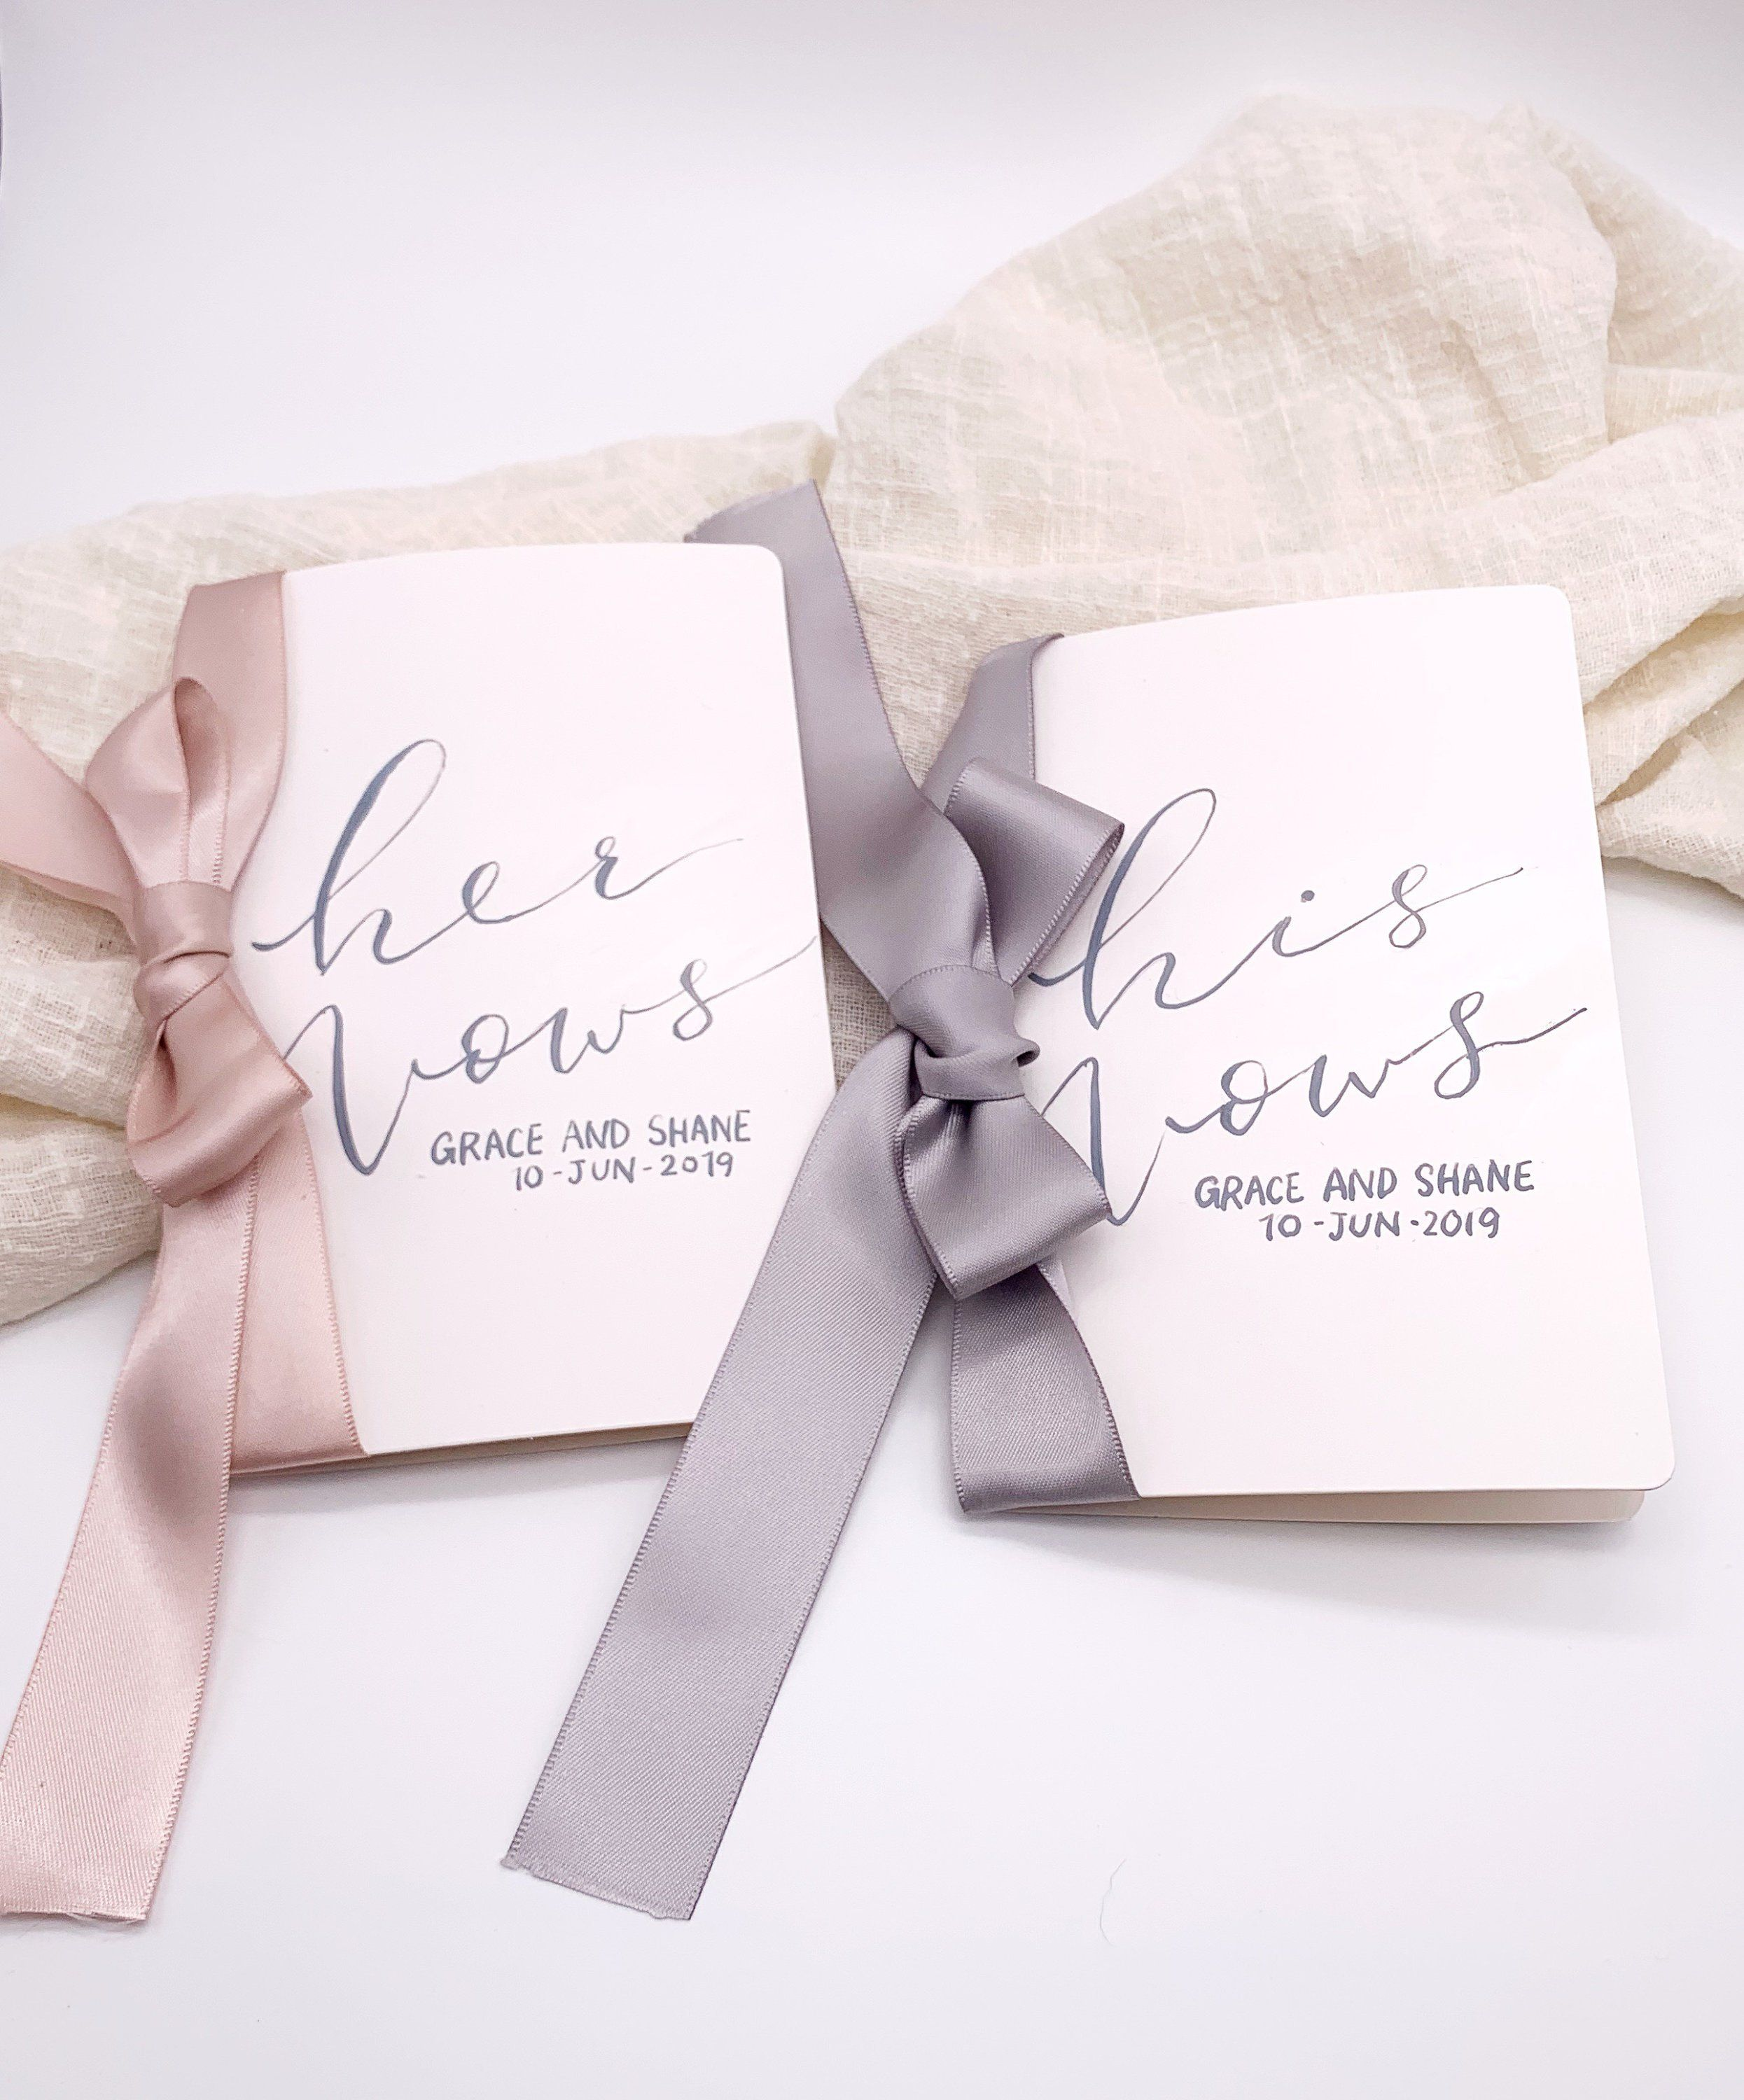 Wedding Vows Gifts Ideas: White His And Her Vow Book, Personalized, Vow Cards, Hand